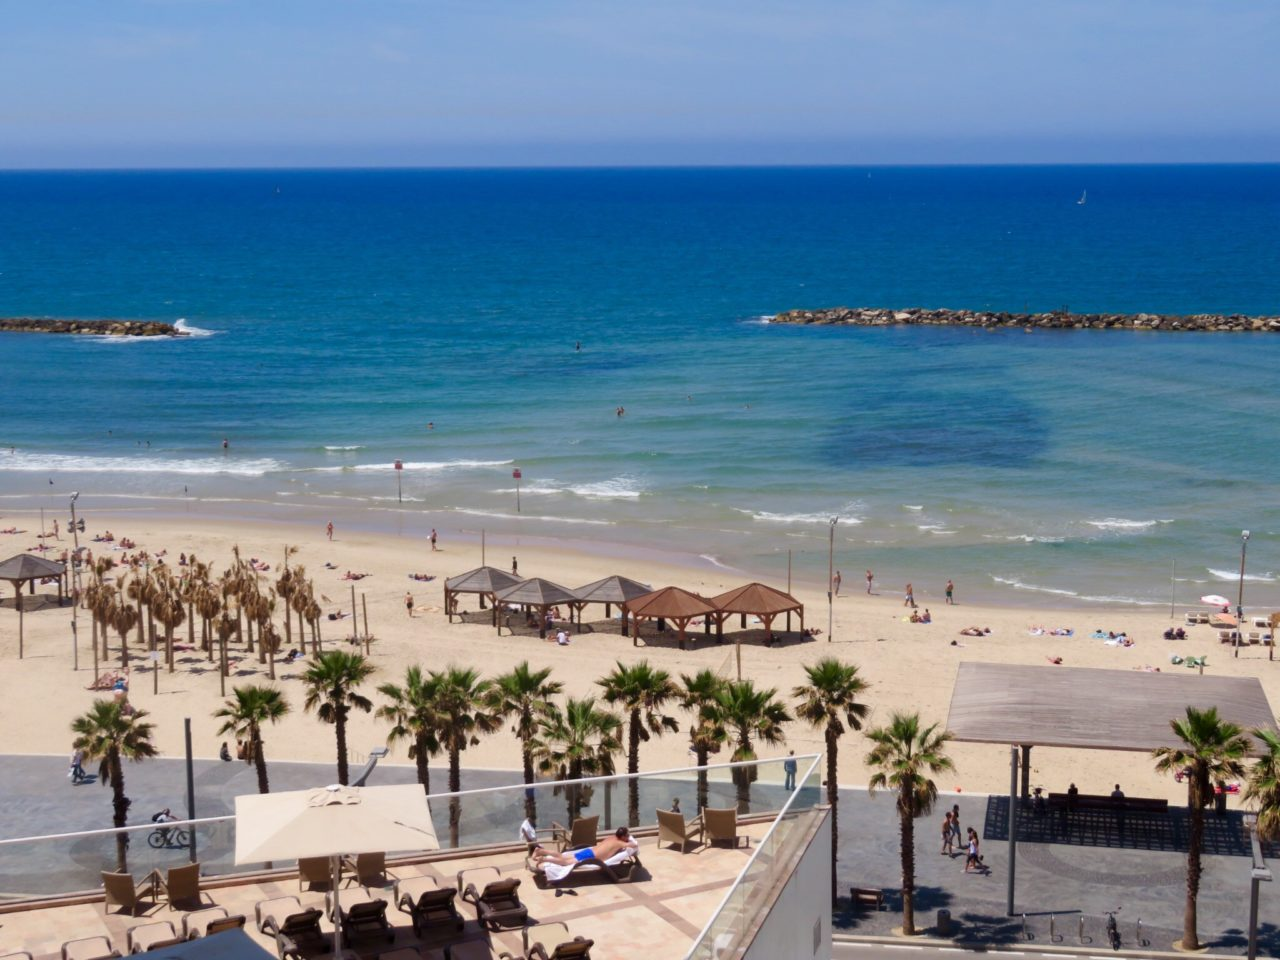 Tel Aviv Beach : View of Frishman Beach from our hotel room window